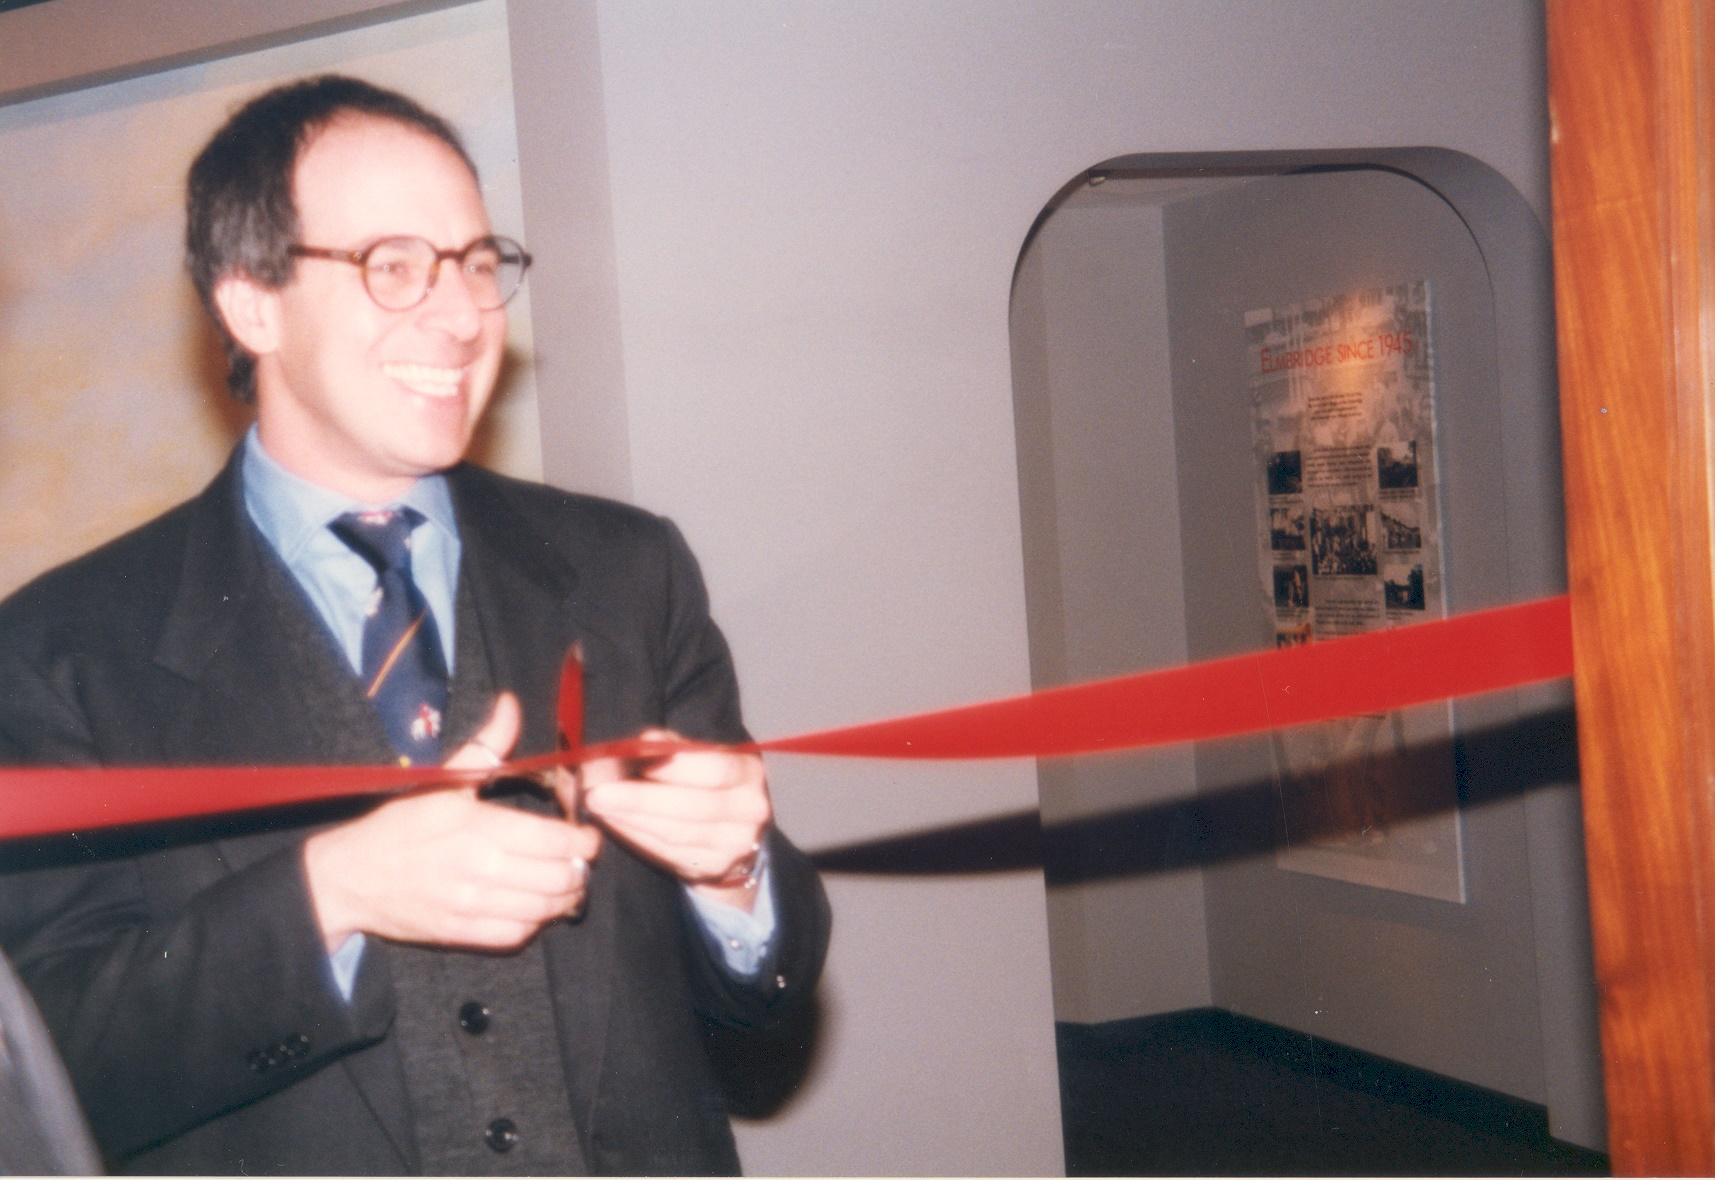 The re-opening of Elmbridge Museum on 10th December 1996 by Loyd Grossman, showing him cutting the ribbon across the Museum entrance, as seen from the Vestibule.